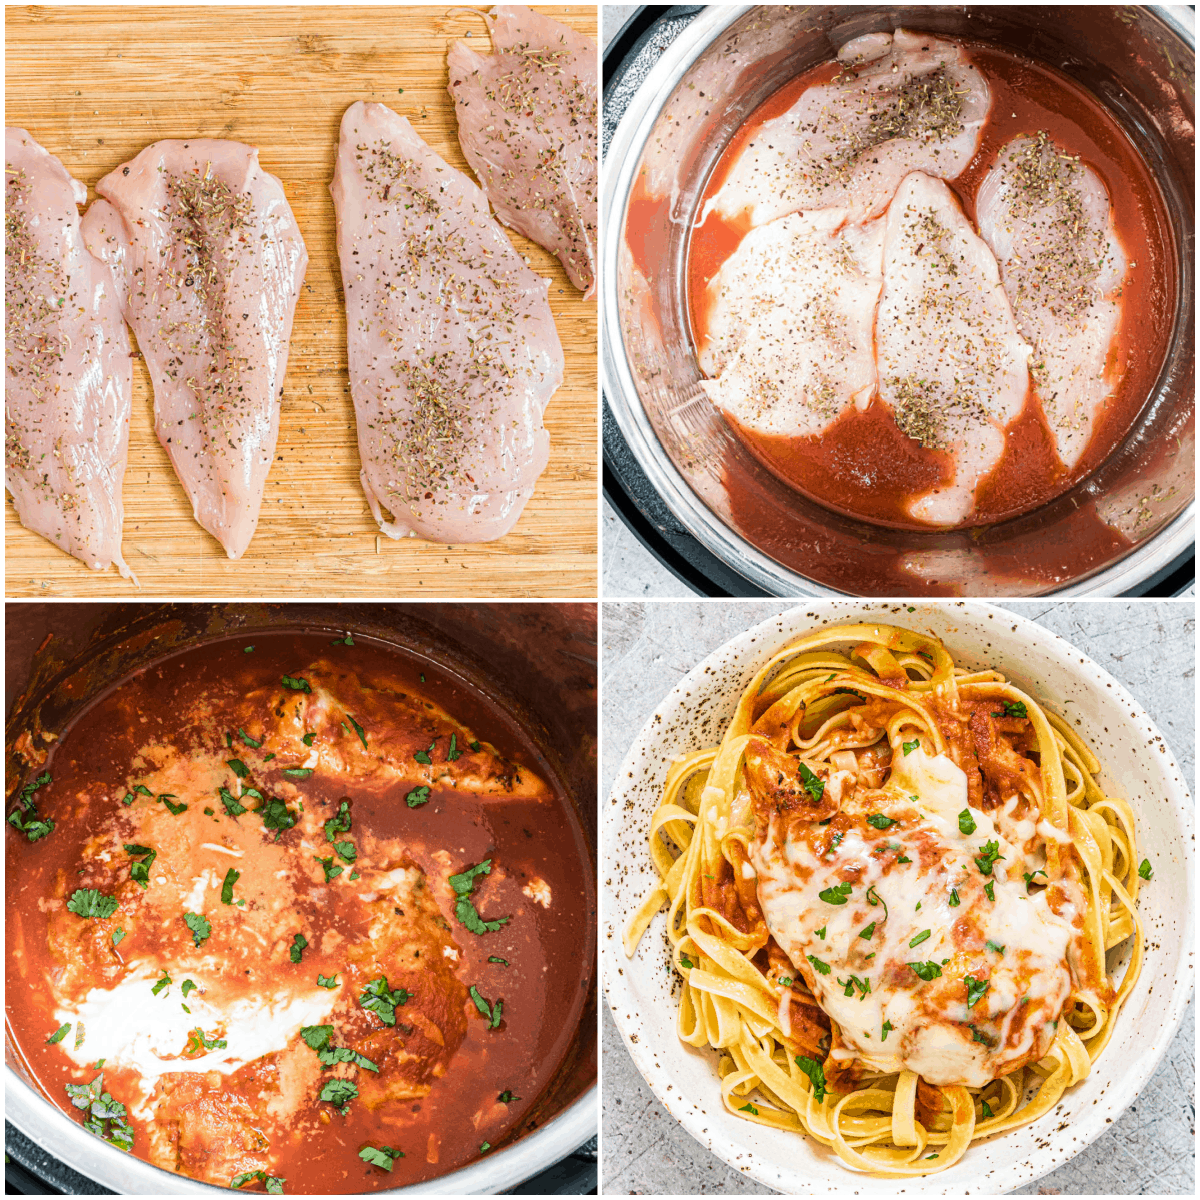 image collage showing the steps for making instant pot parmesan chicken